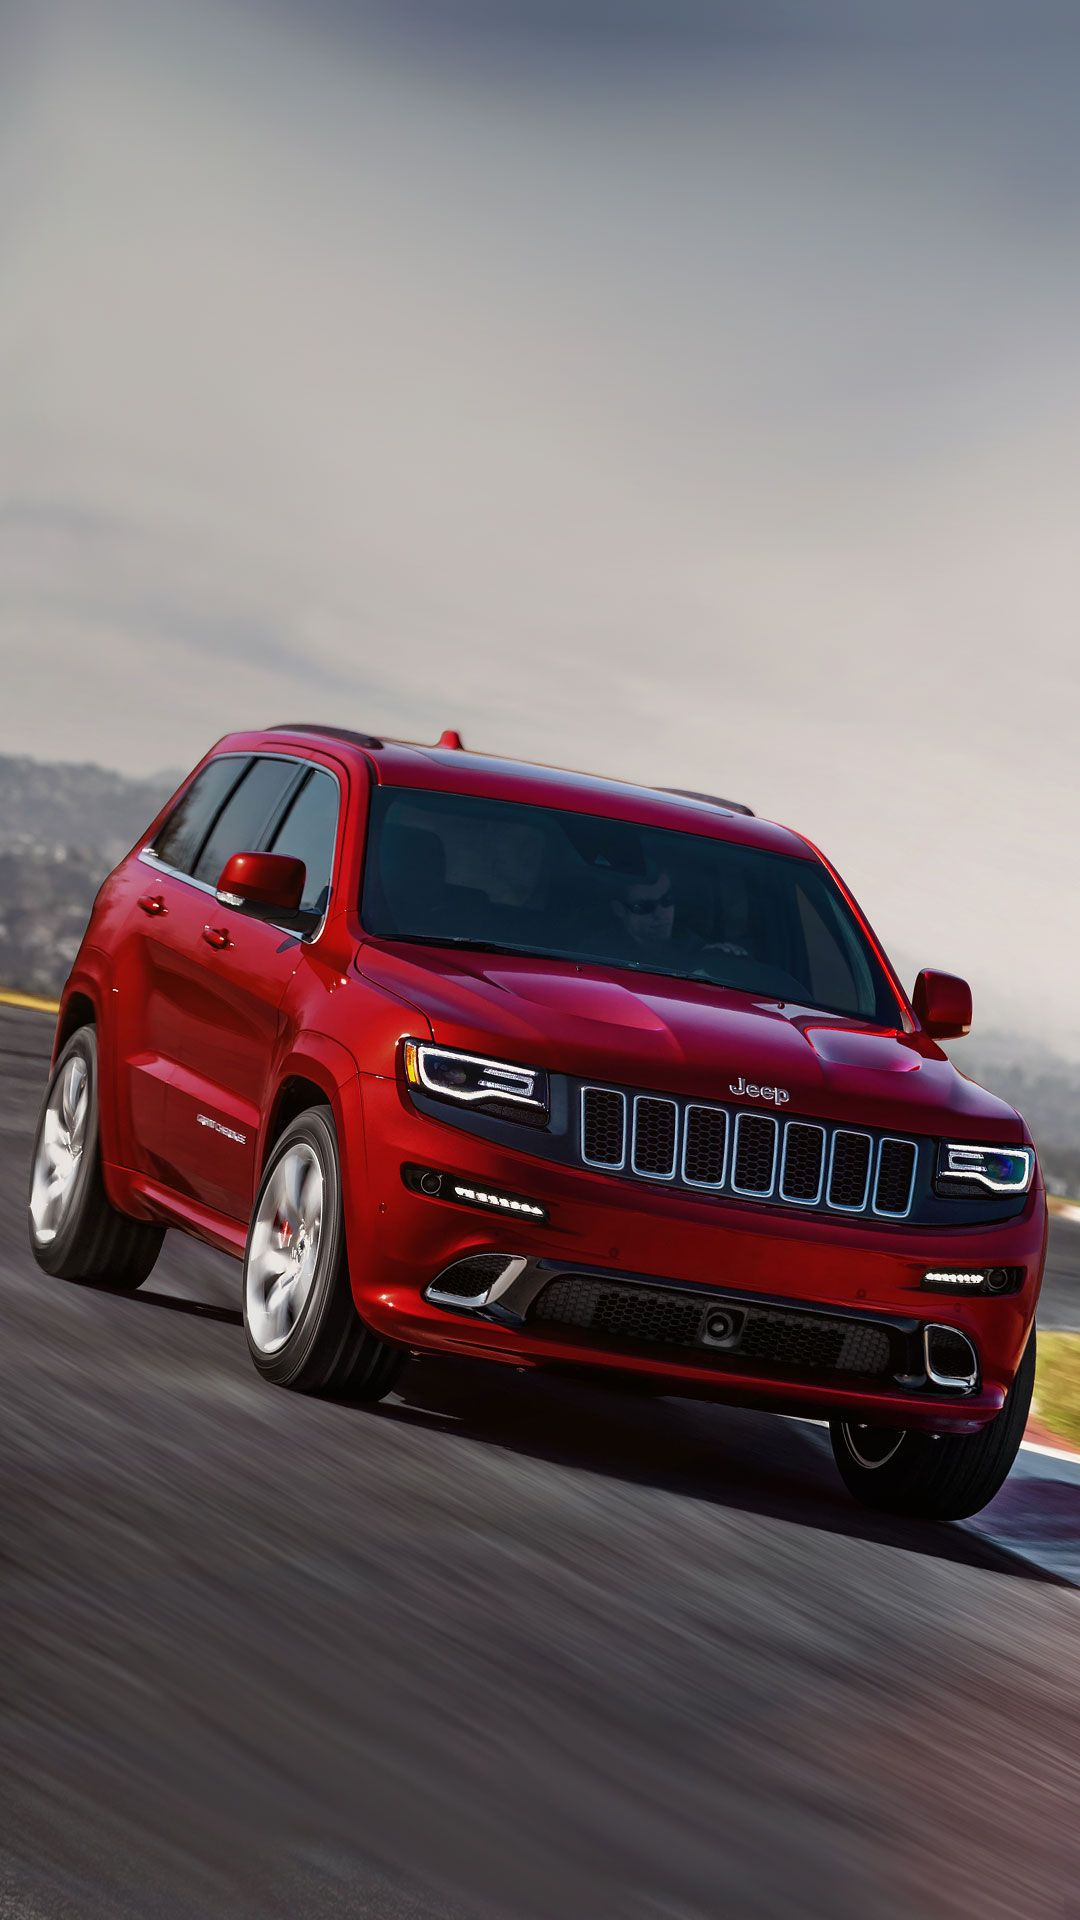 2017 Jeep Grand Cherokee Wallpaper iPhone 6 Plus | Cars ...